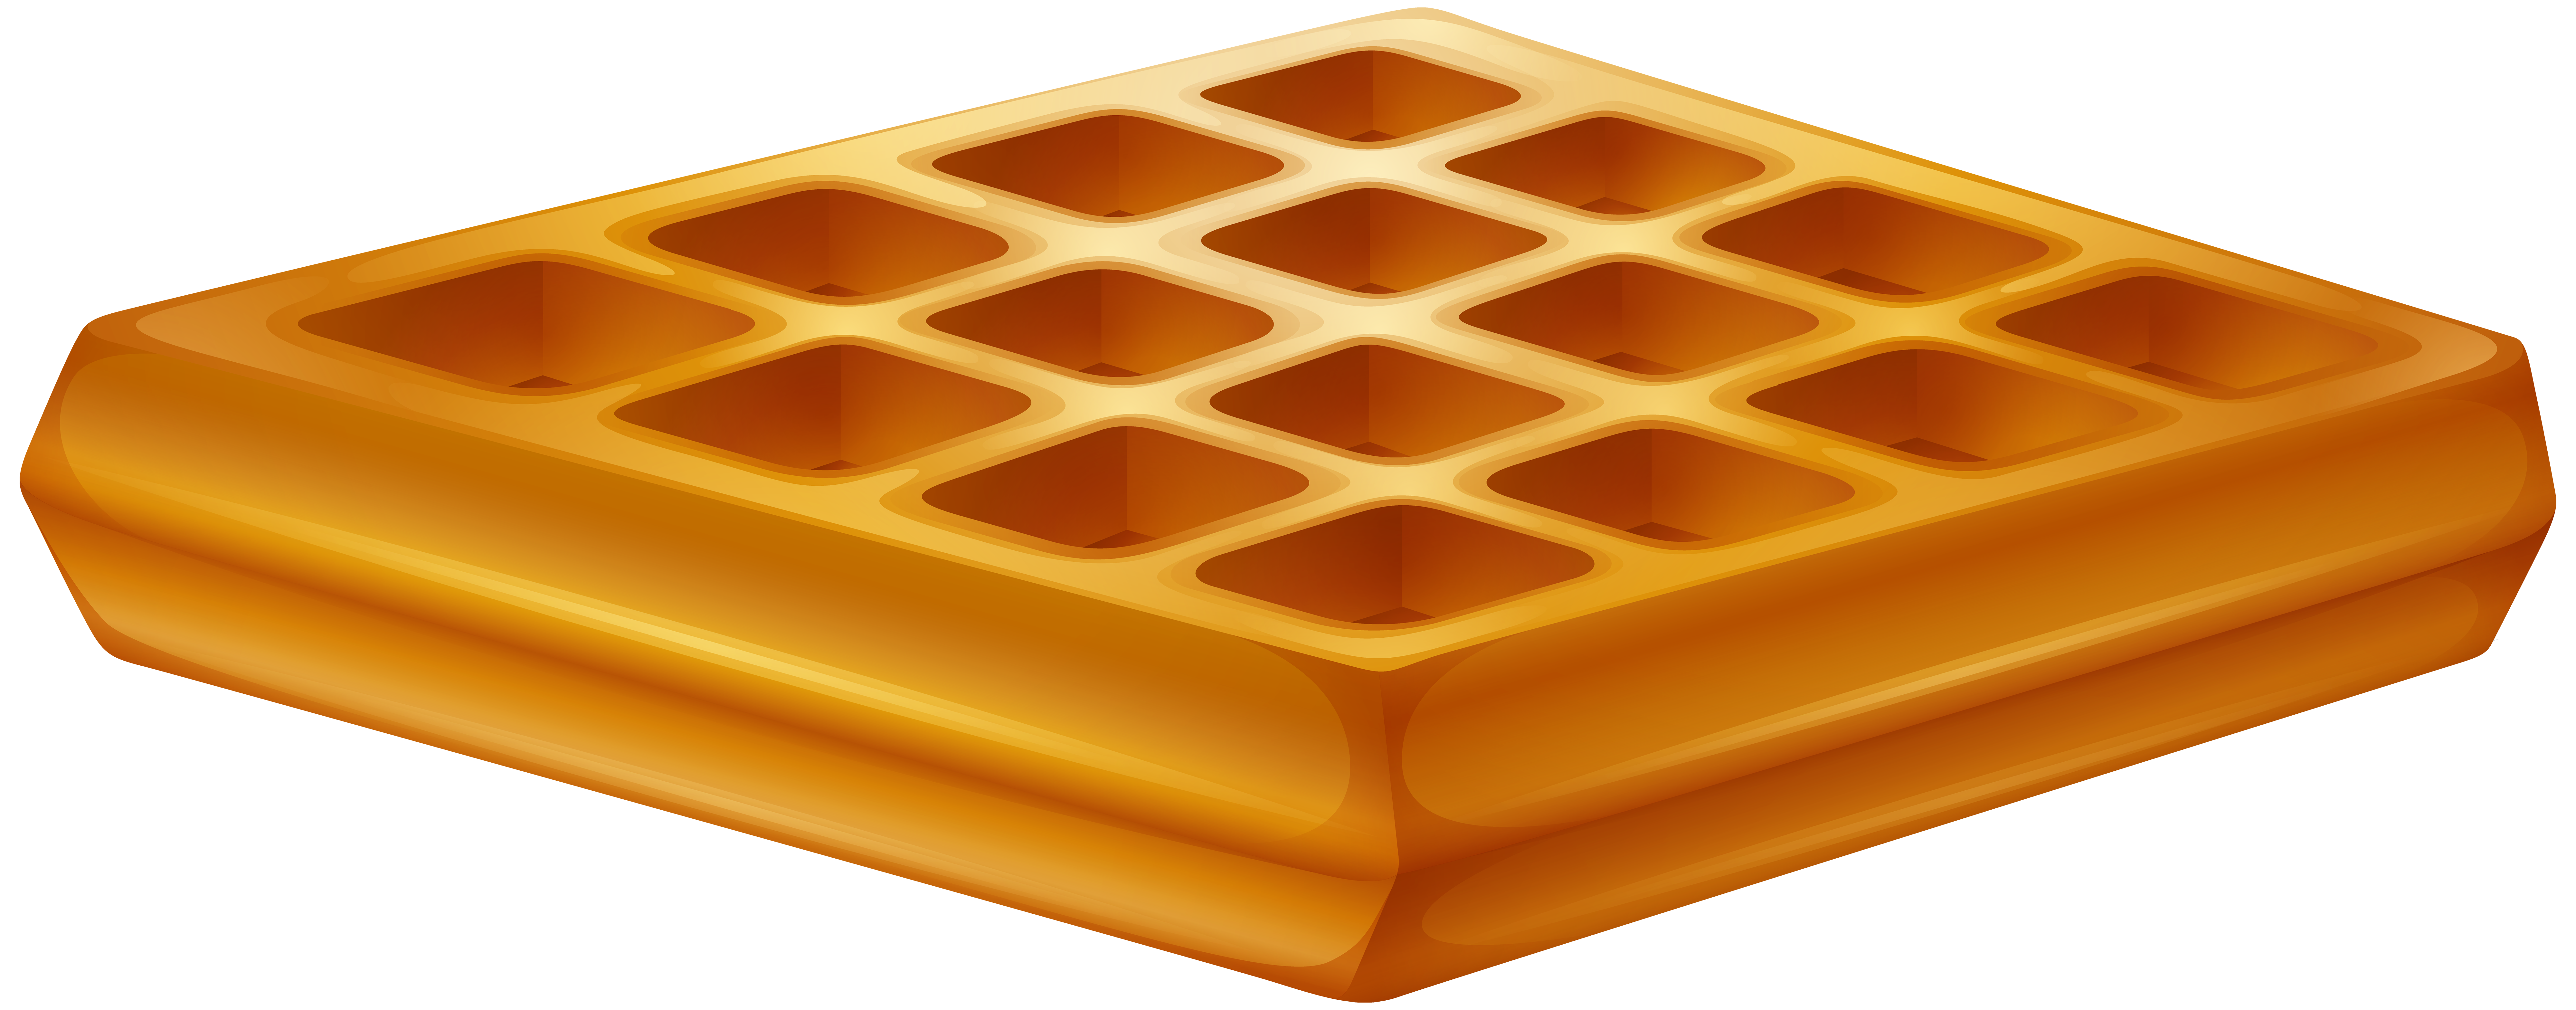 Waffle clipart. Png clip art best